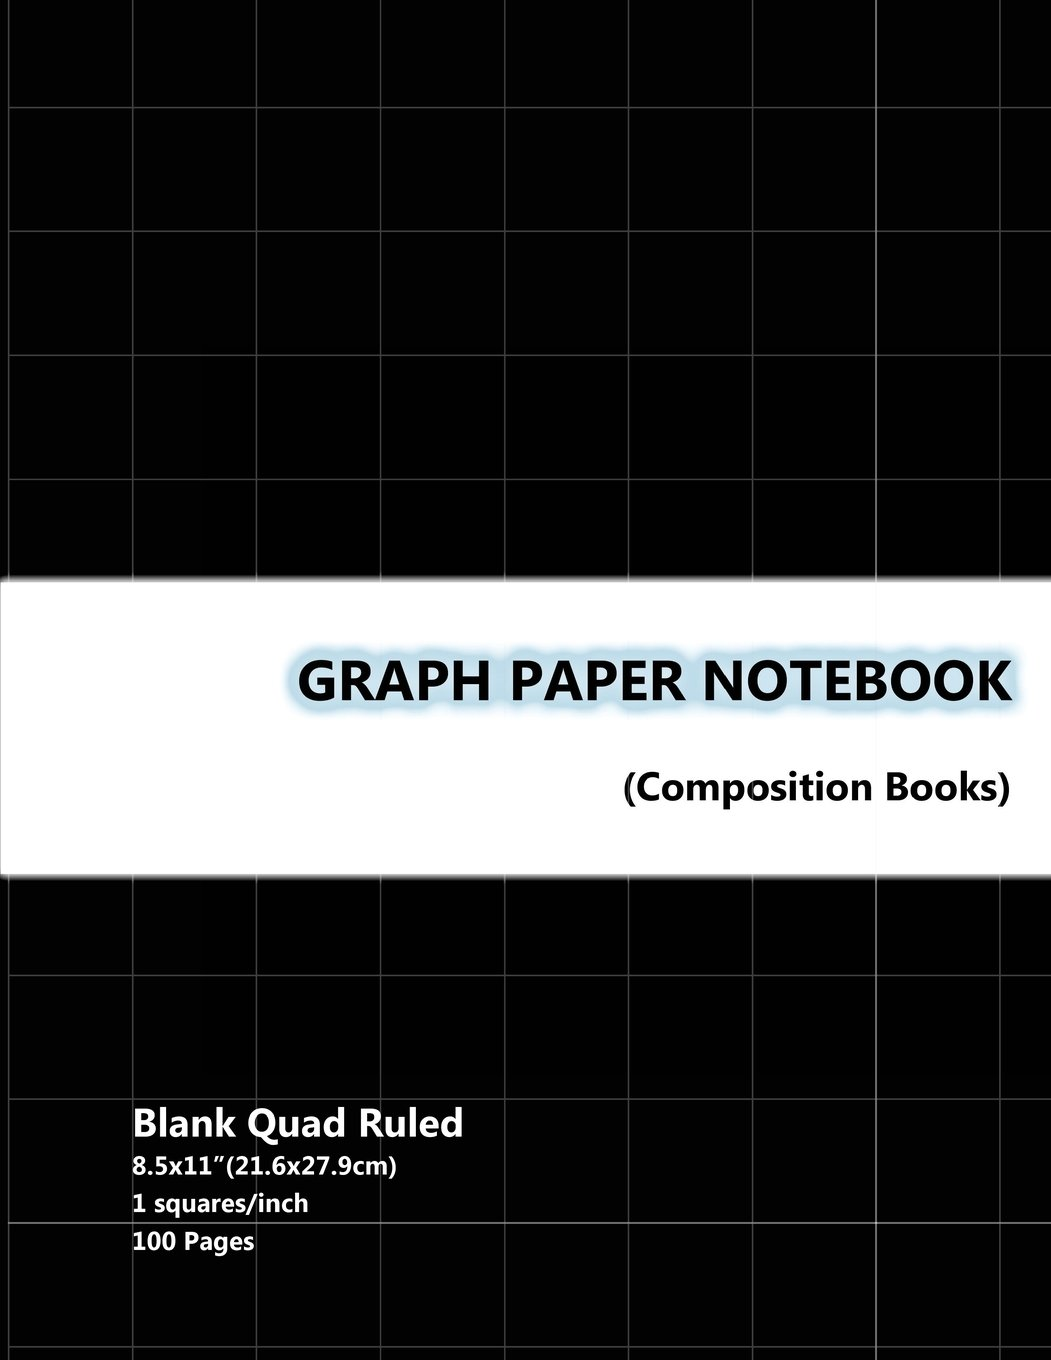 amazon graph paper notebook 1 squared notebook graphing paper